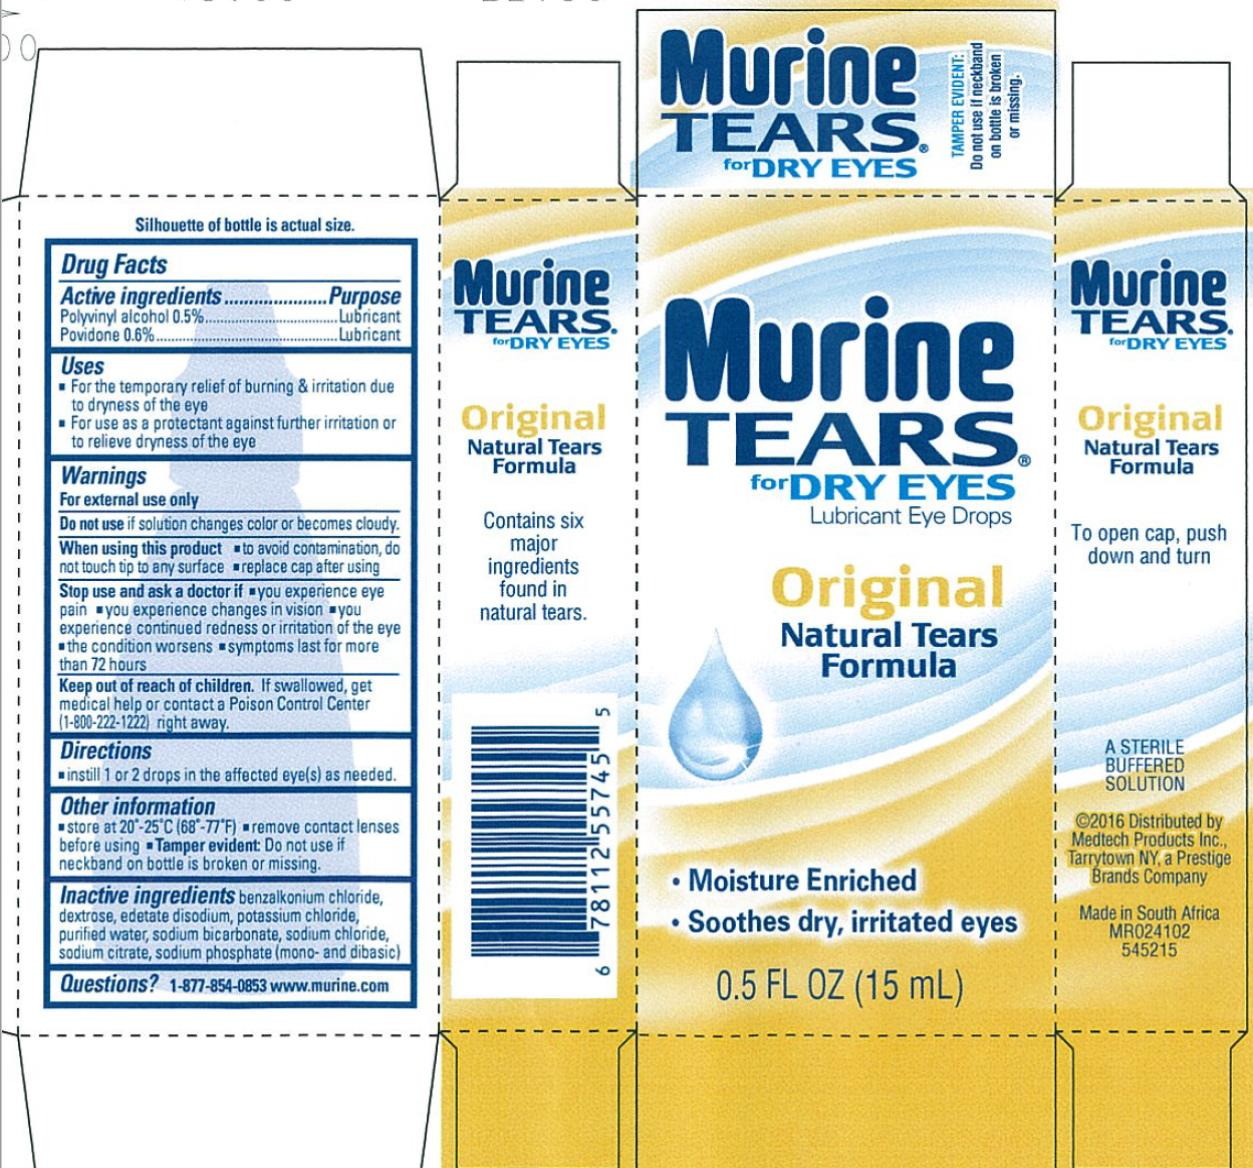 Murine Tears For Dry Eyes (Polyvinyl Alcohol And Povidone) Liquid [Prestige Brands Holdings, Inc.]